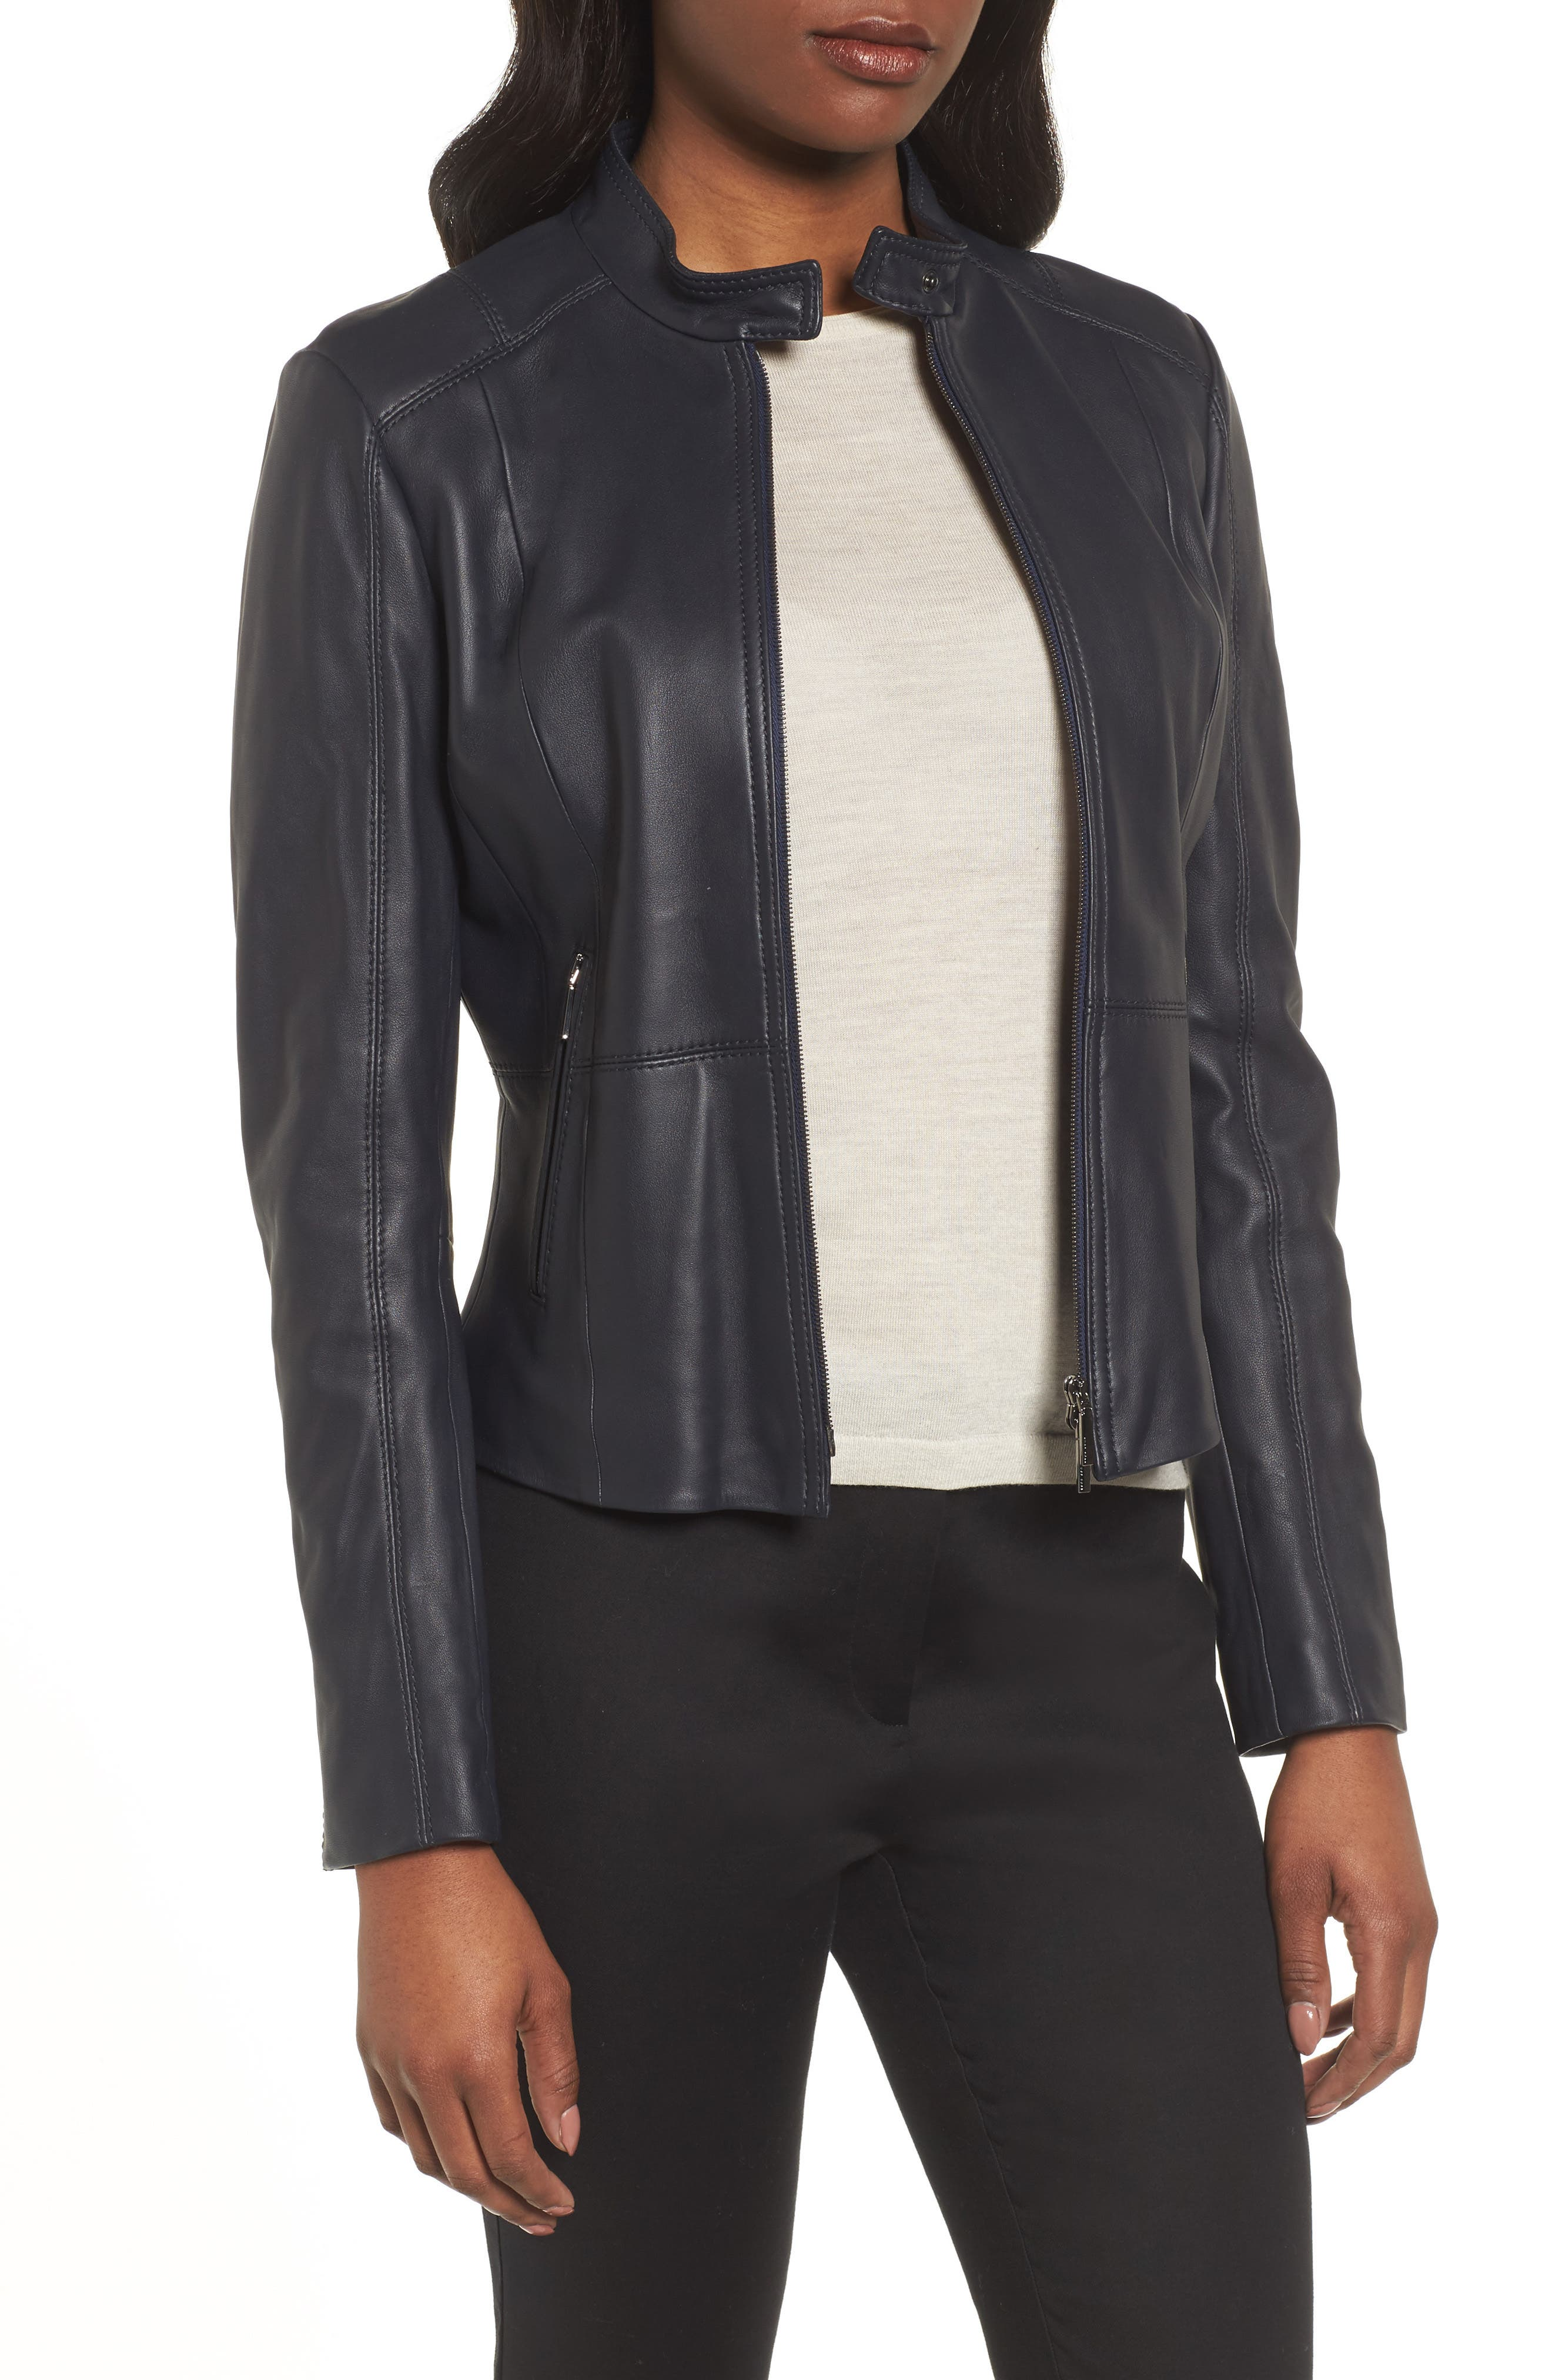 Sammonaie Leather Jacket,                         Main,                         color, 480